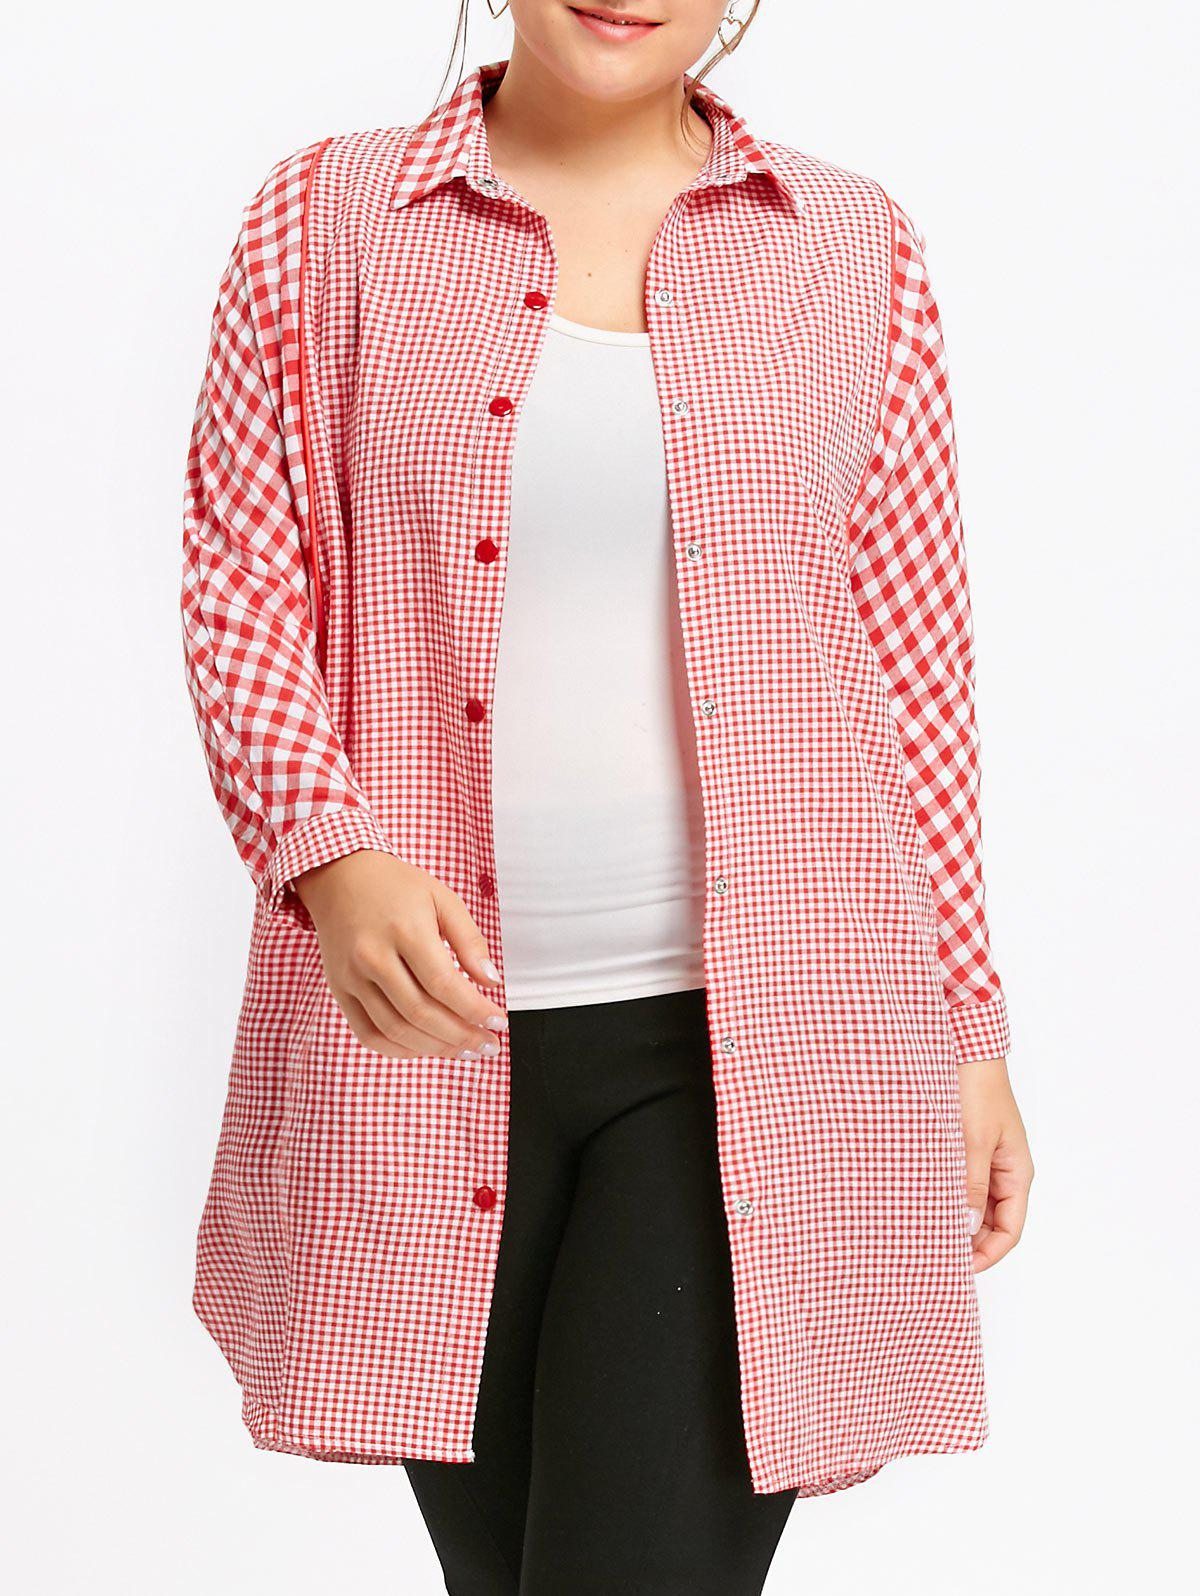 Long Plus Size Plaid Tunic ShirtWOMEN<br><br>Size: 5XL; Color: RED; Material: Cotton Blends,Polyester; Shirt Length: Long; Sleeve Length: Full; Collar: Shirt Collar; Style: Fashion; Season: Fall,Winter; Sleeve Type: Batwing Sleeve; Embellishment: Button; Pattern Type: Plaid; Weight: 0.3300kg; Package Contents: 1 x Shirt;